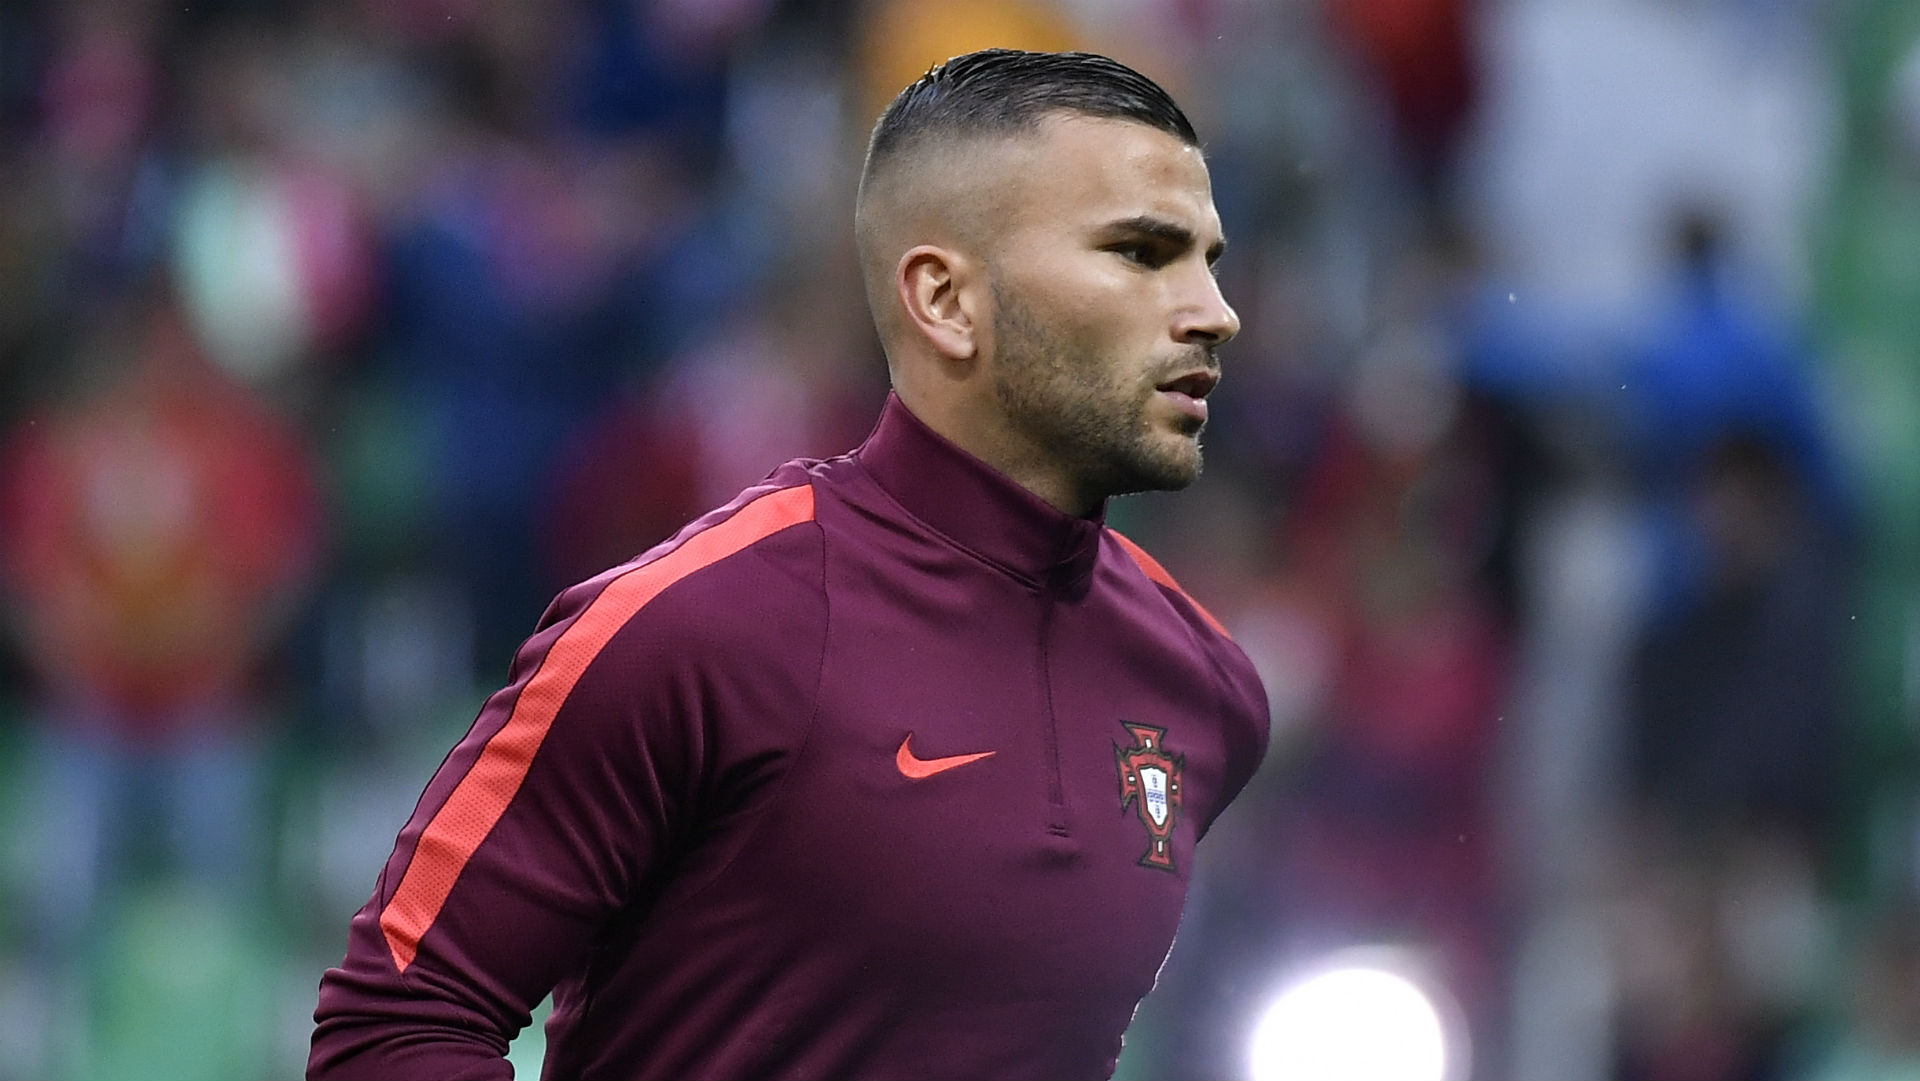 Anthony Lopes positif au Covid-19 et placé à l'isolement — OL / Portugal